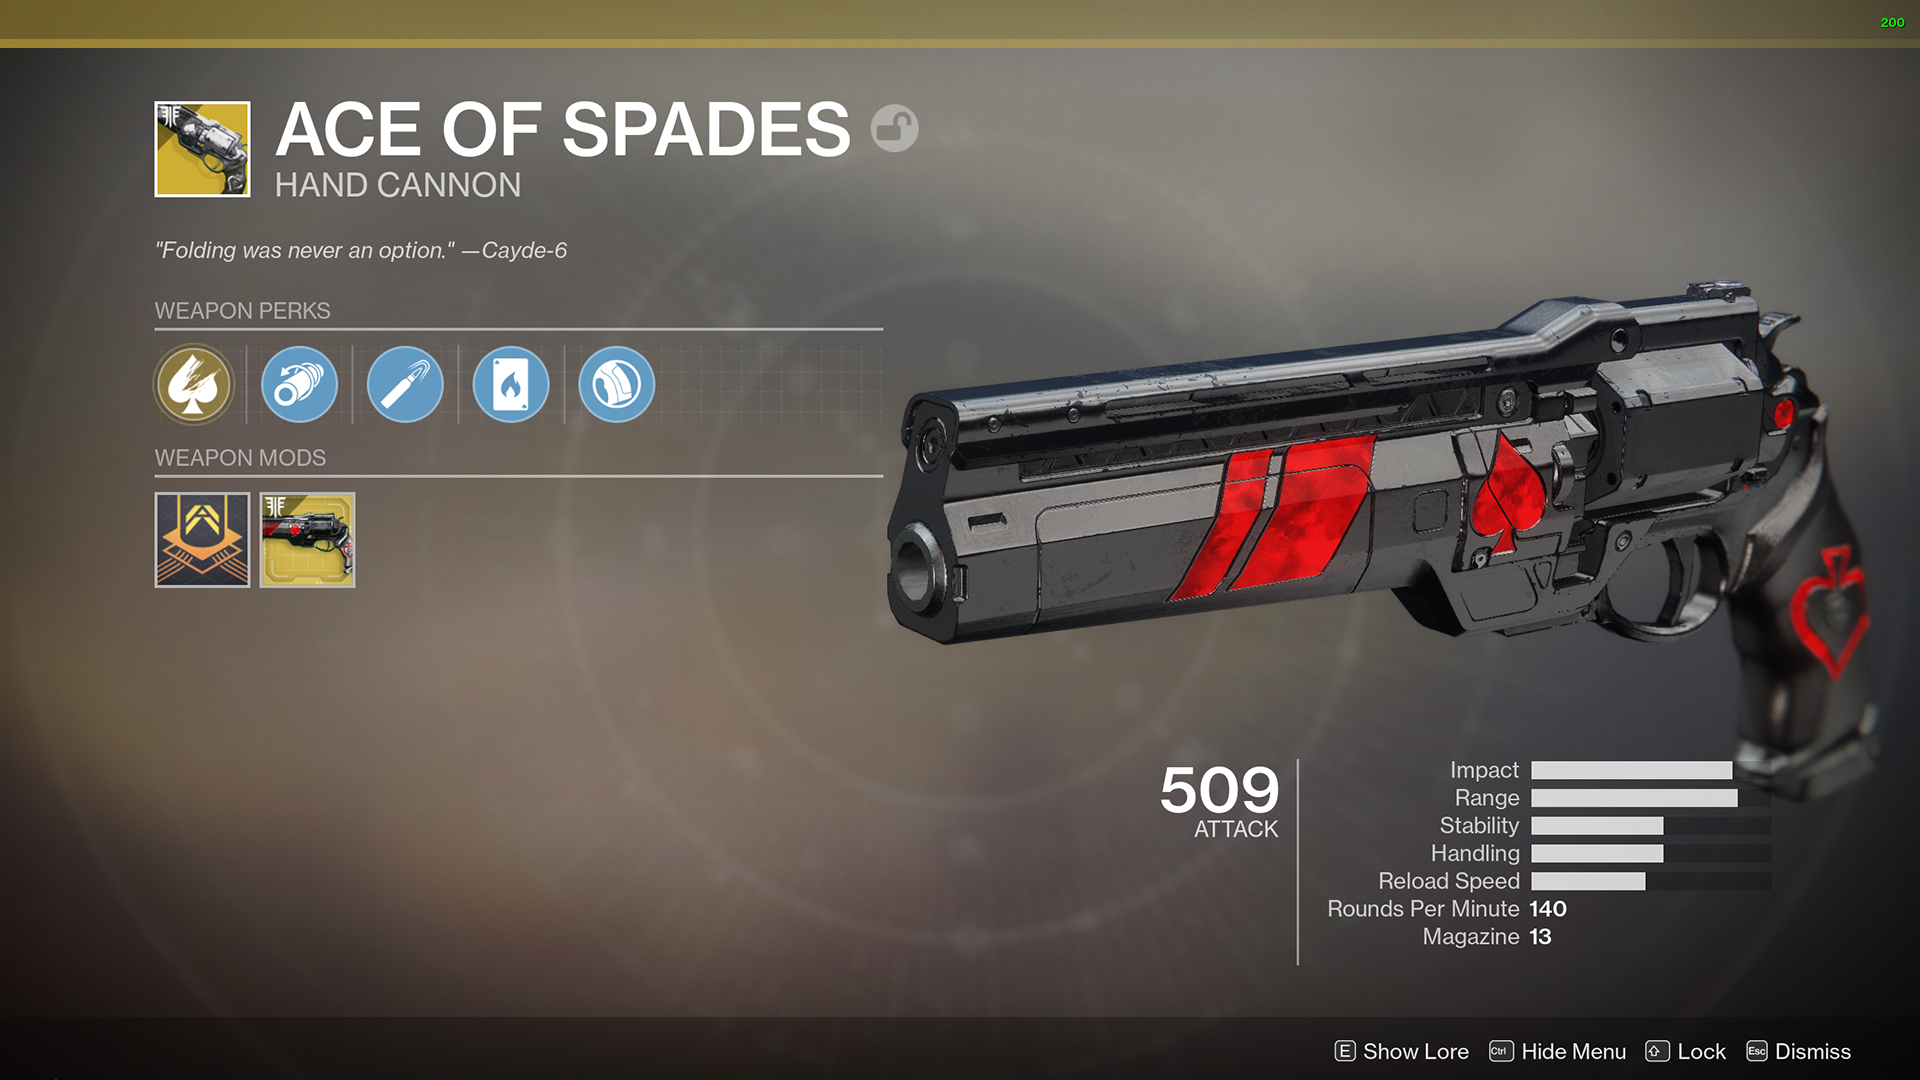 How-to Get Ace of Spades – Quest Steps Guide (Exotic Hand Cannon